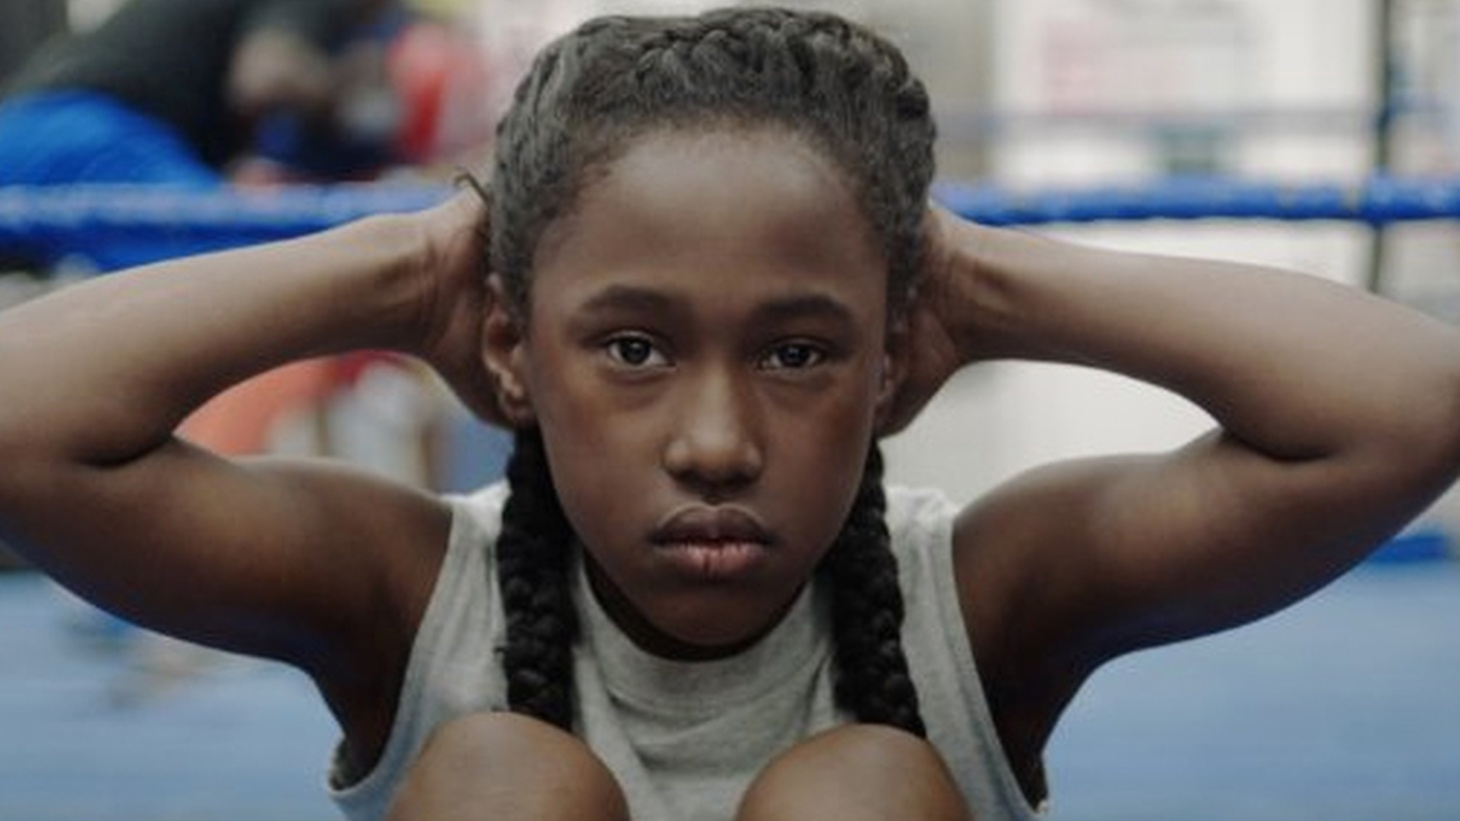 A wonderful little movie,The Fits opens on an 11-year old doing sit-ups -- 25 in all, hands clasped behind her head, radiant face to the camera.